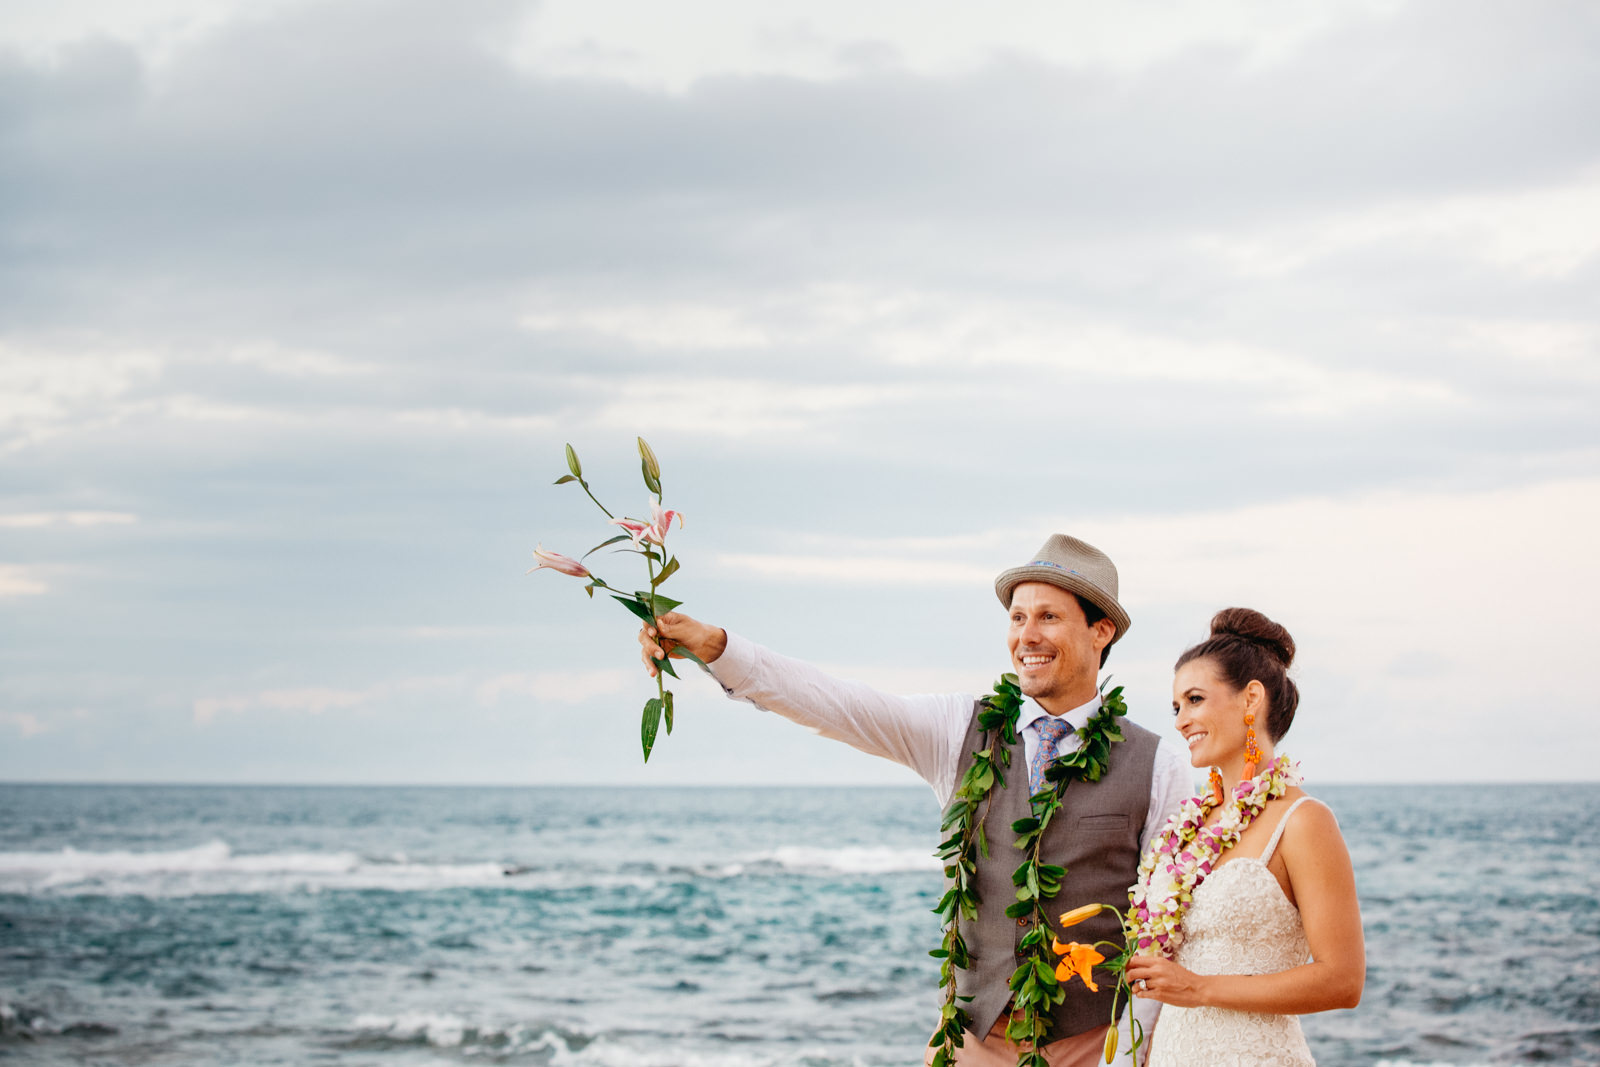 Princeville Hanelei Kauai Hawaii Destination Elopement Wedding 46